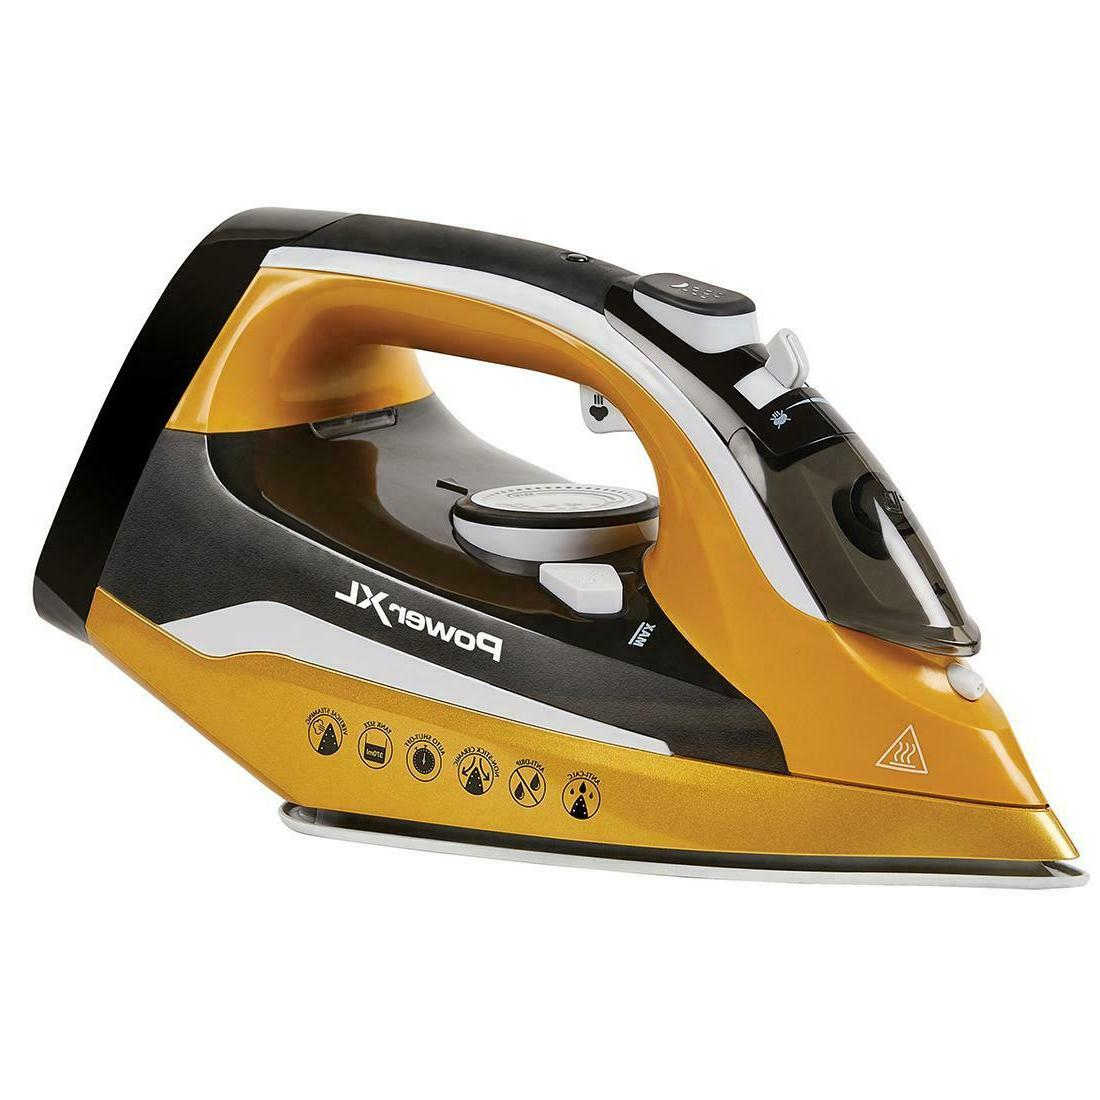 power xl cordless iron and steamer 2